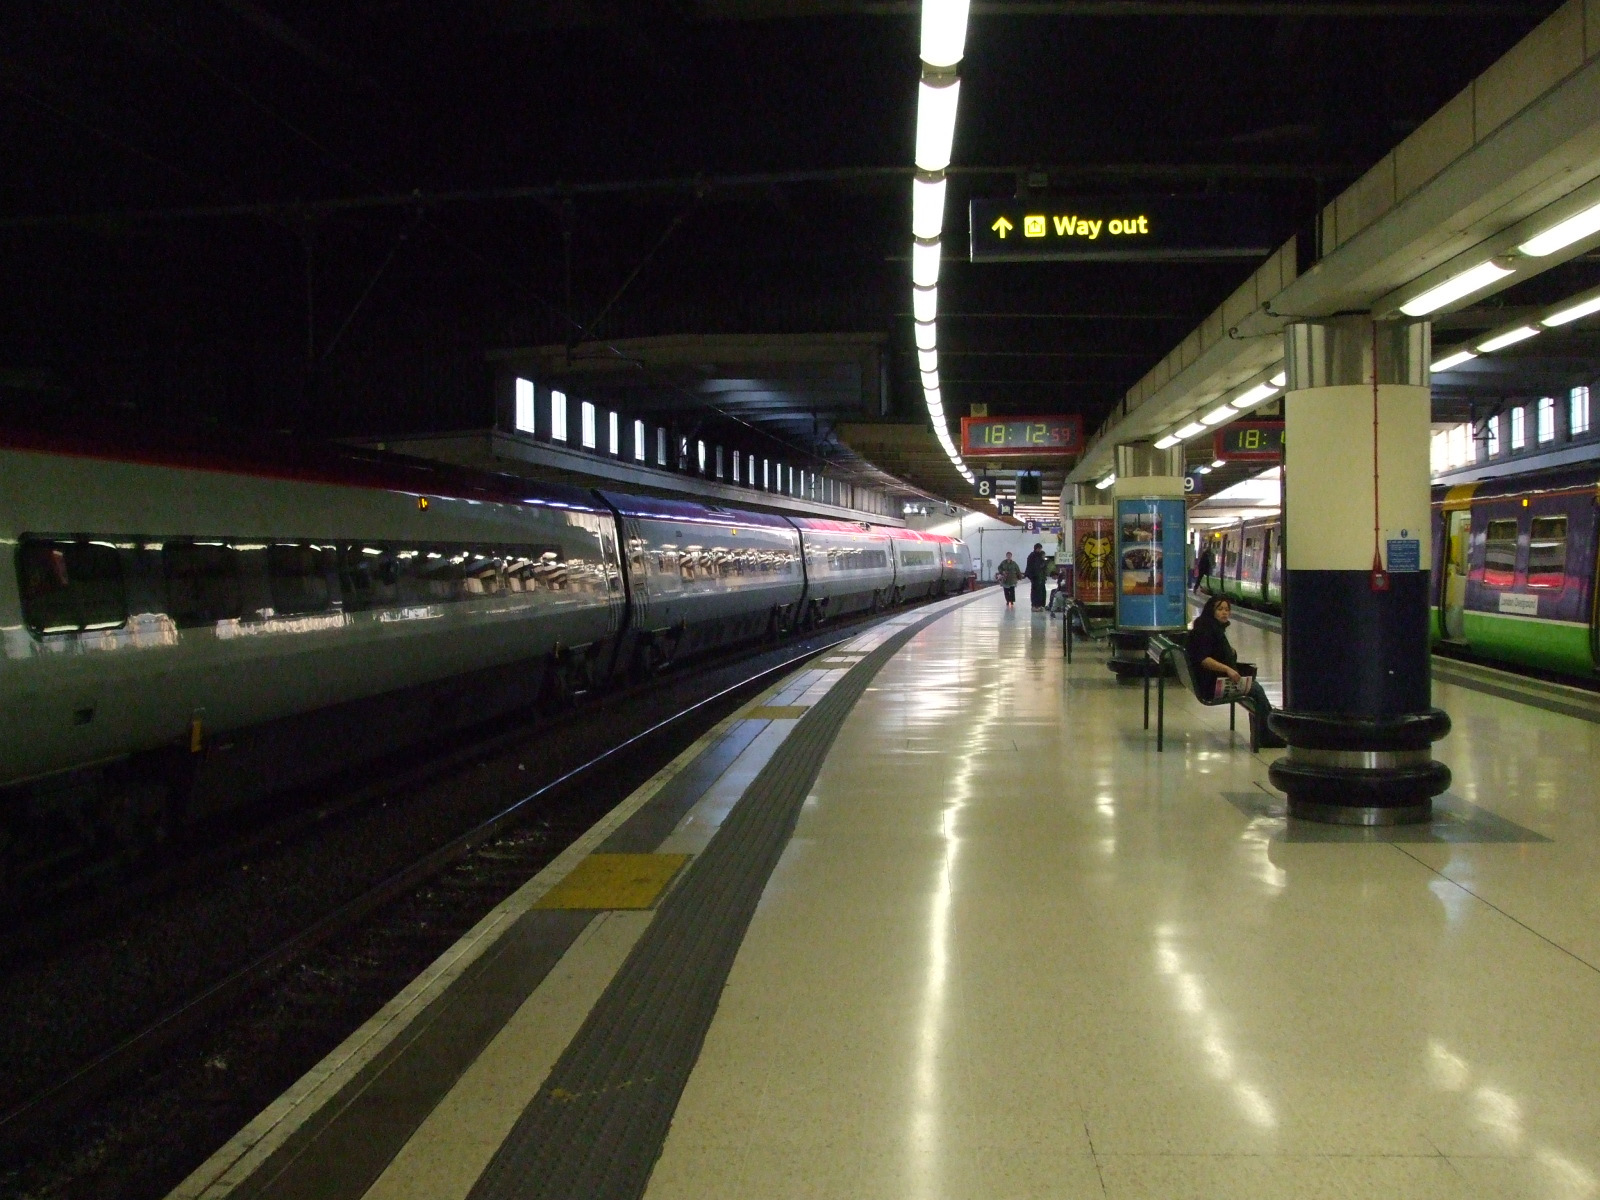 File:Euston station mainline platform 8 look south.JPG ...